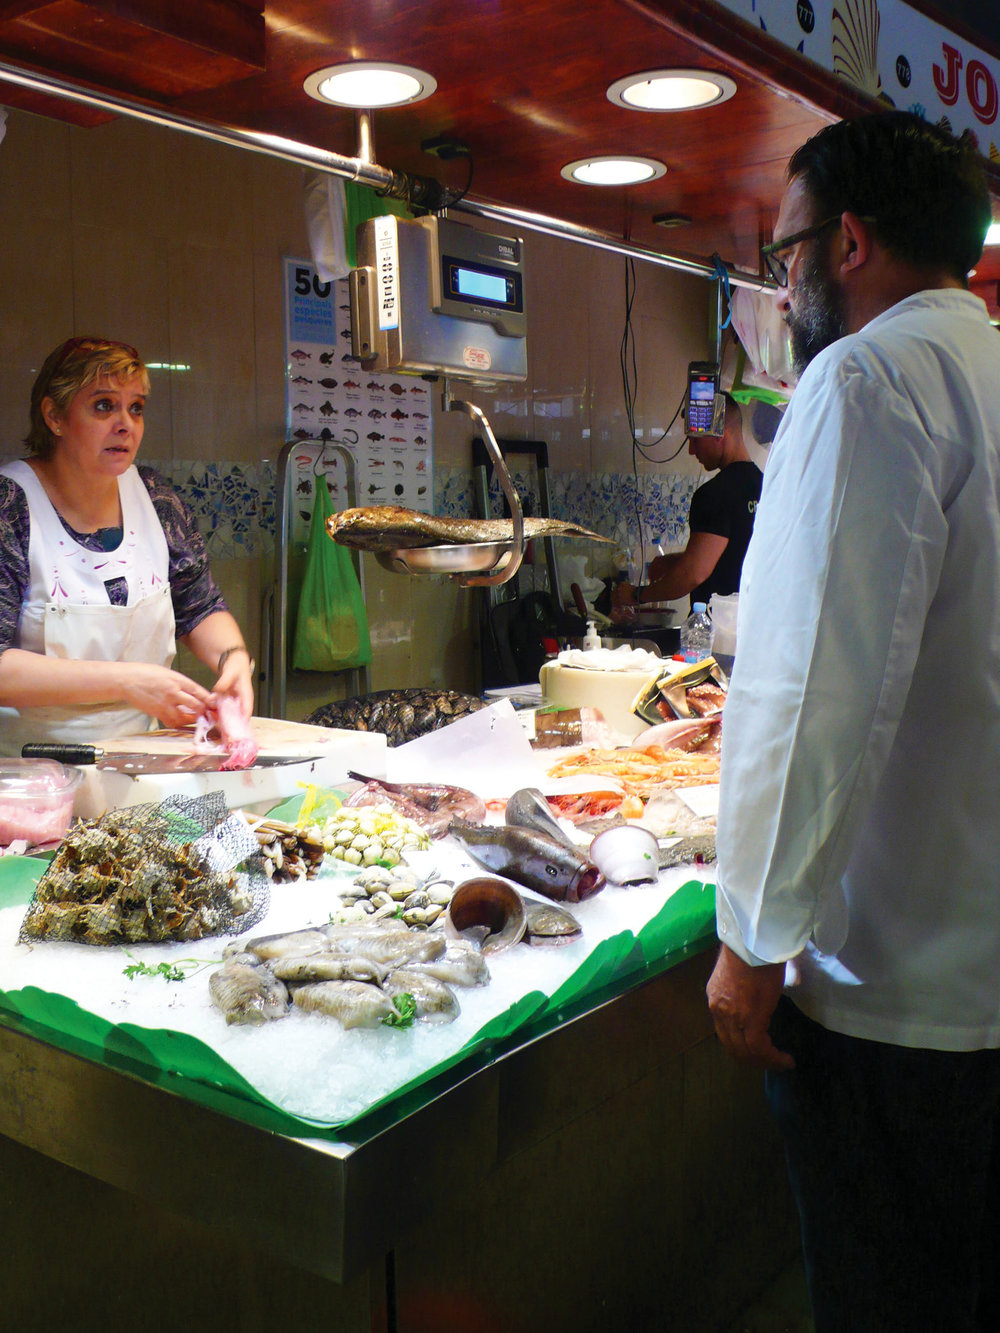 Chef Oscar Manresa talks to the fish expert at La Boqueria marketplace. Photo by Ben Maloney.